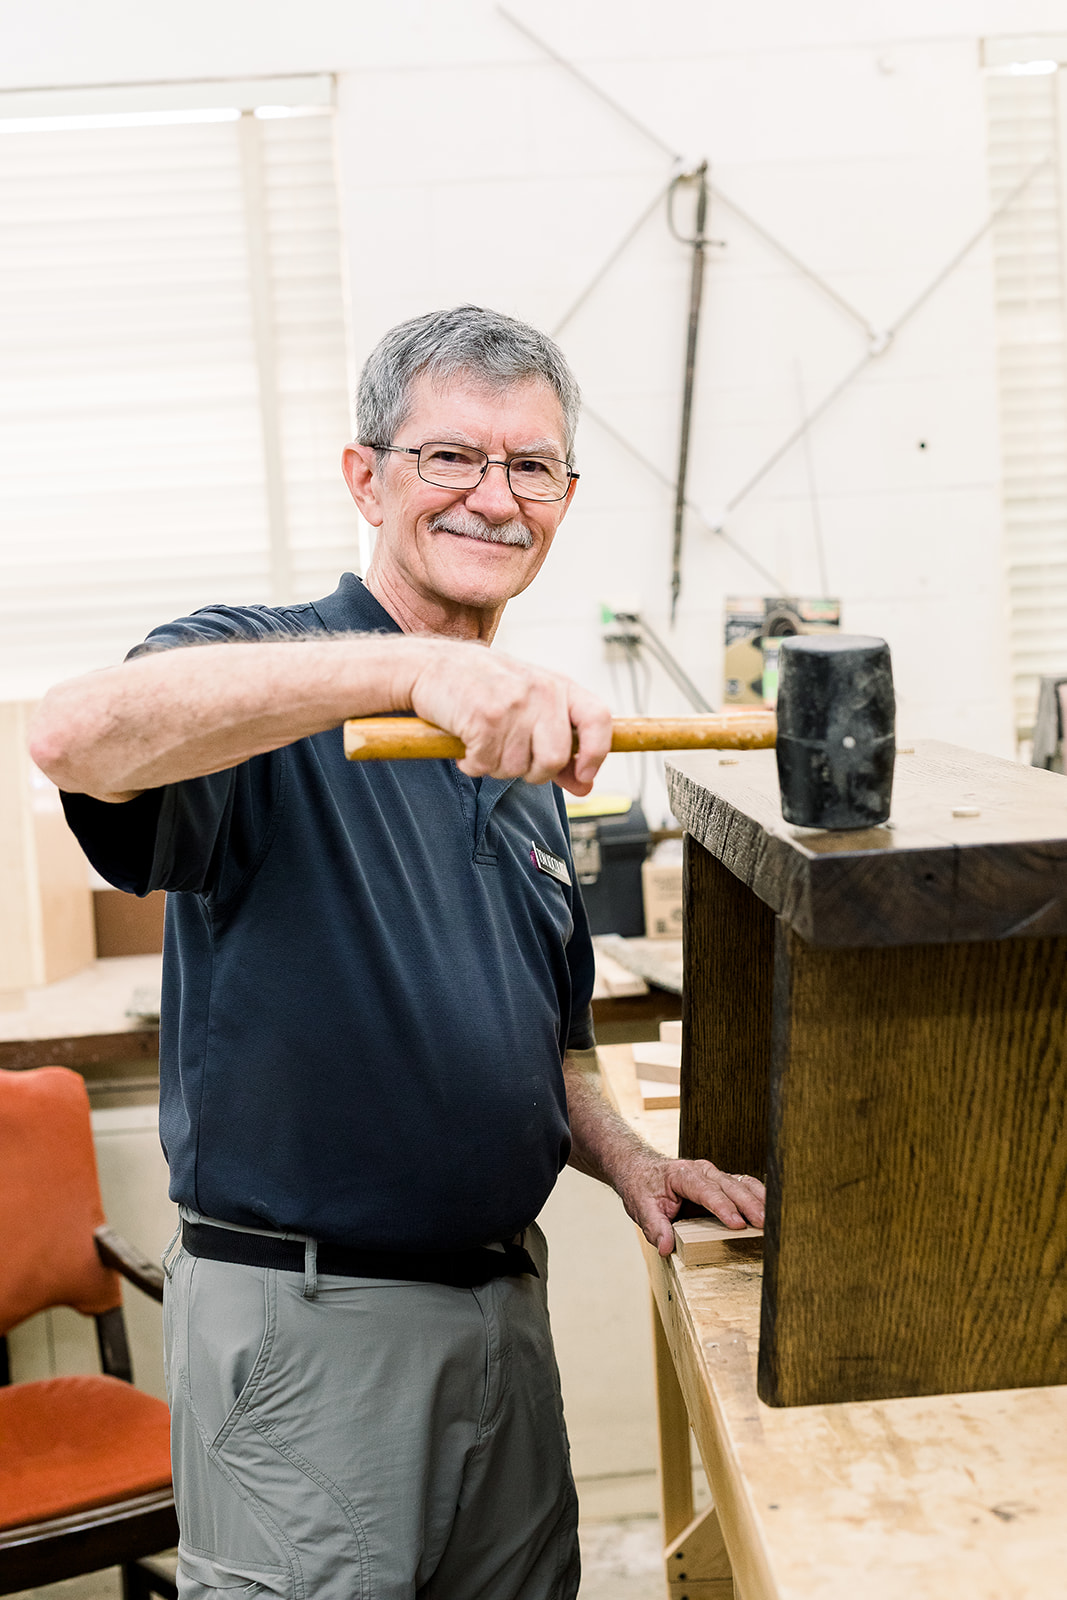 Residents stay active in our campus woodshop.